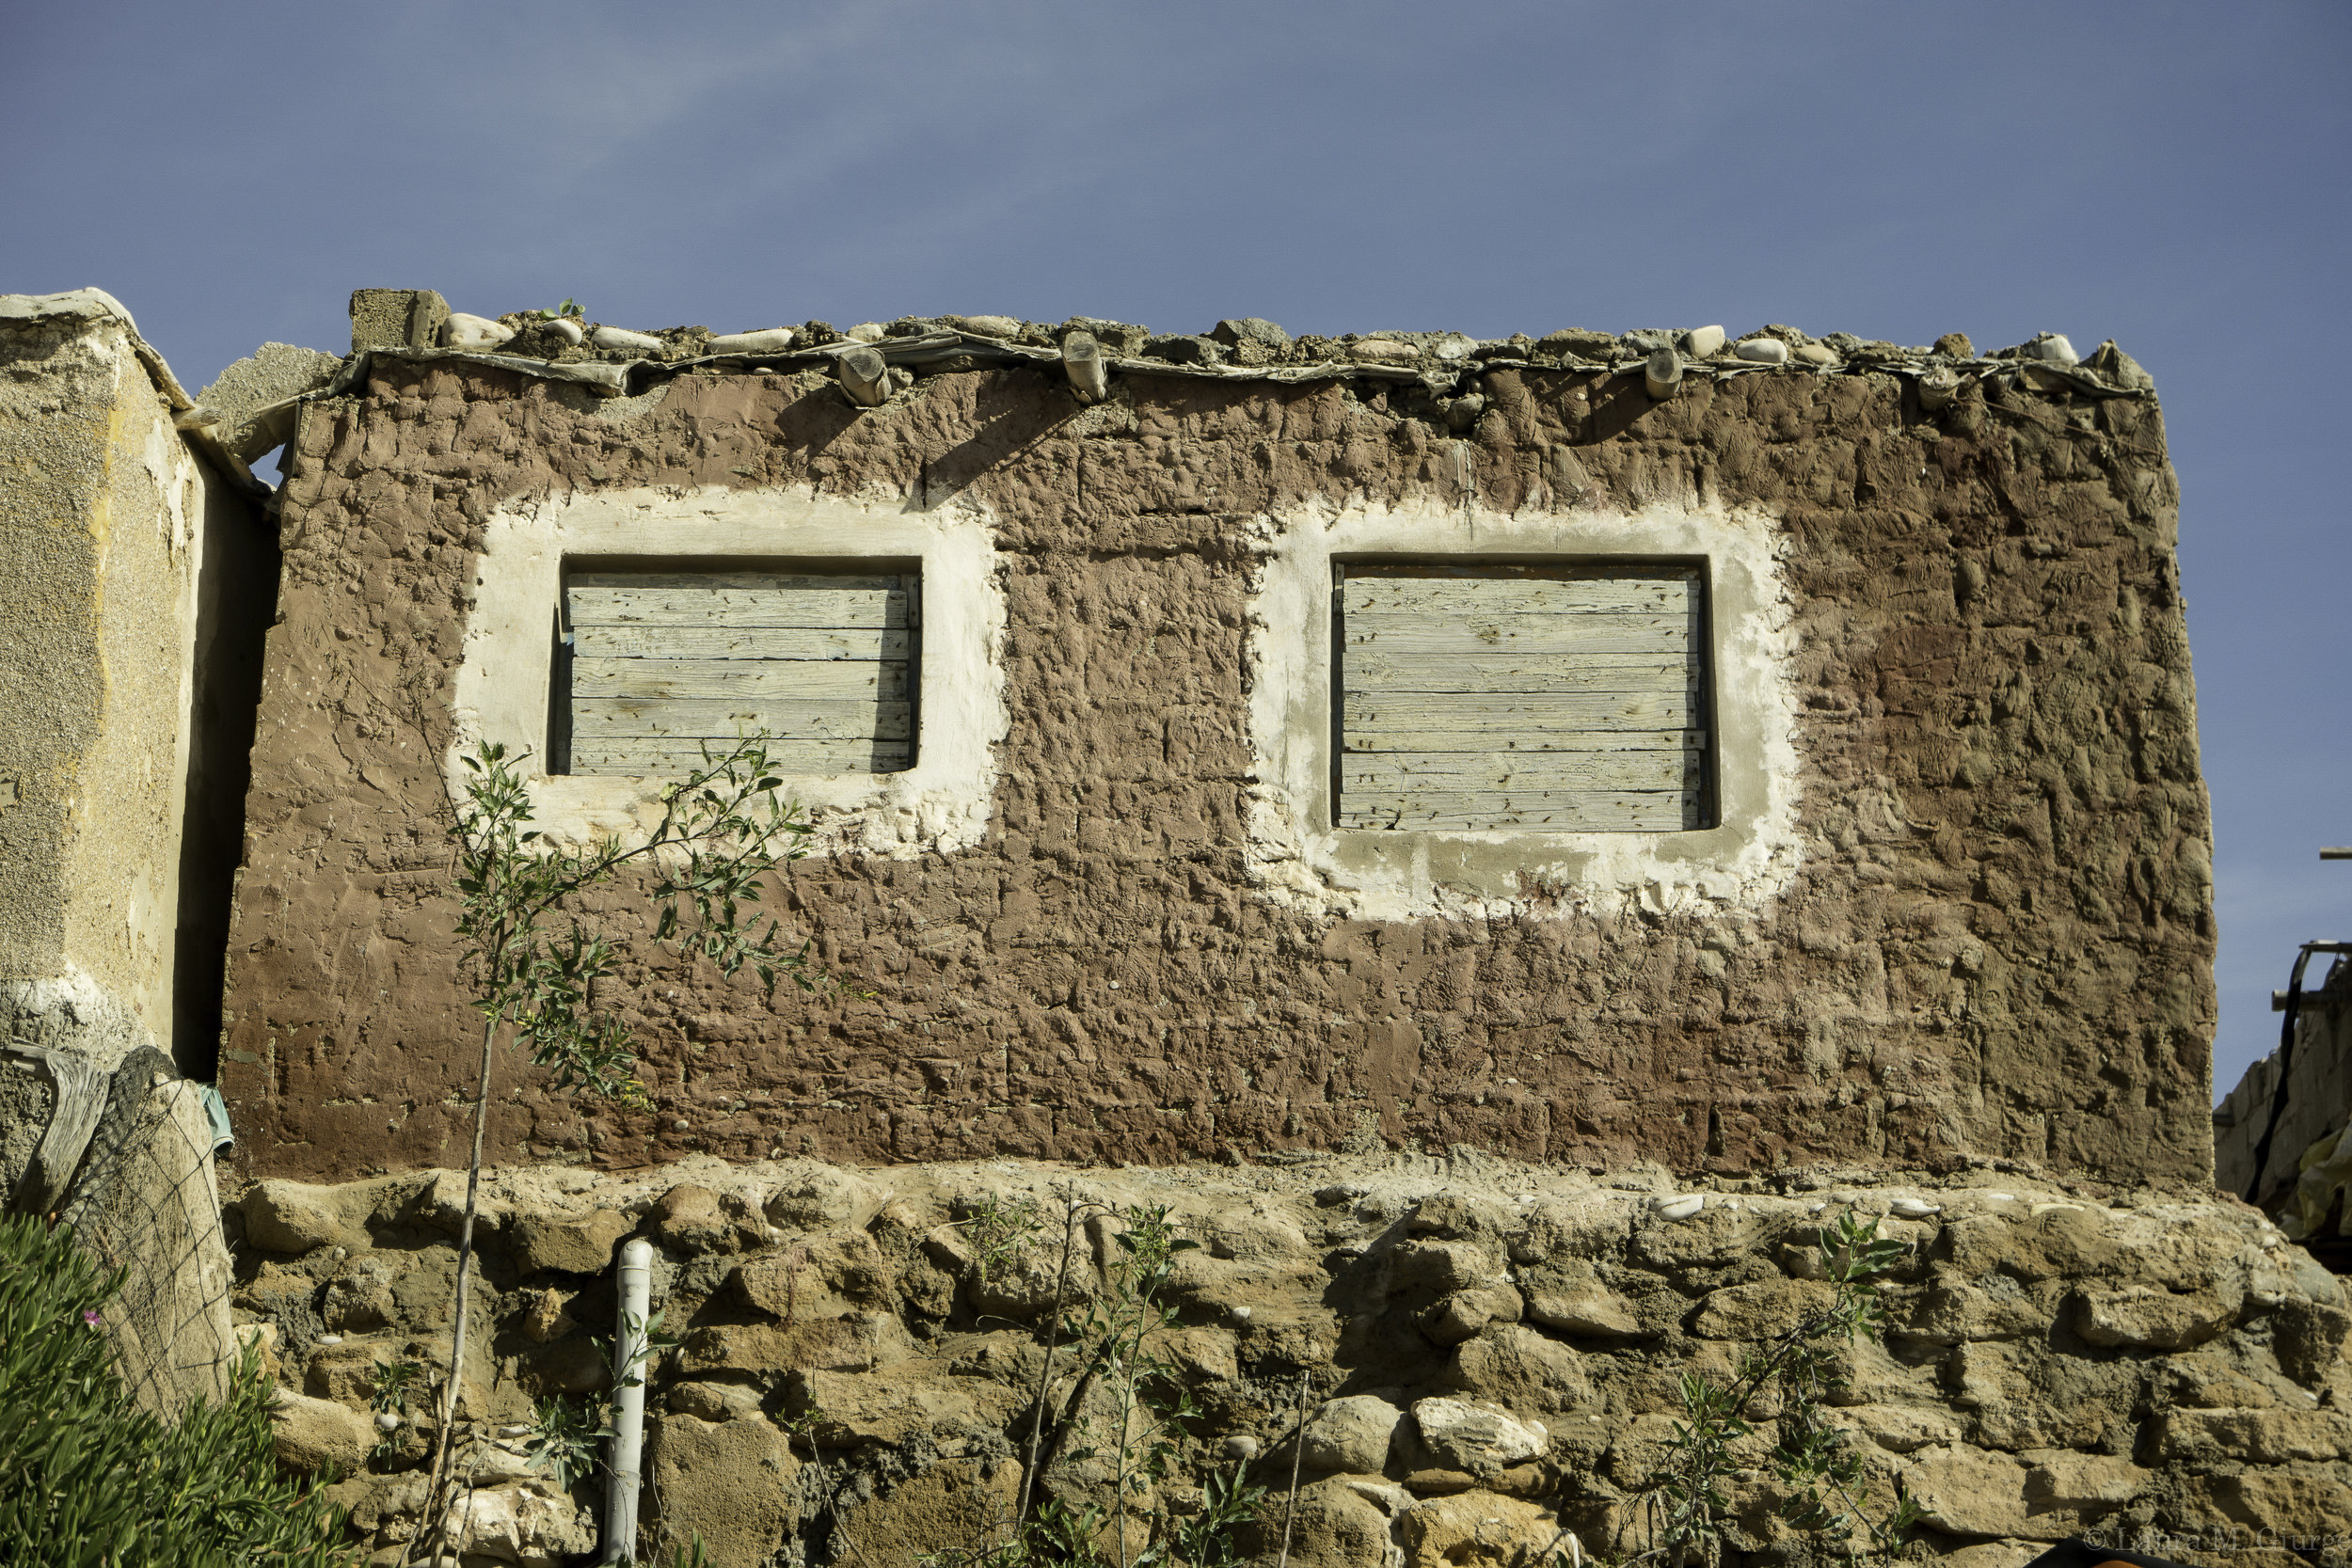 Stand-tall-with-square-eyes-windows-of-Morocco.jpg